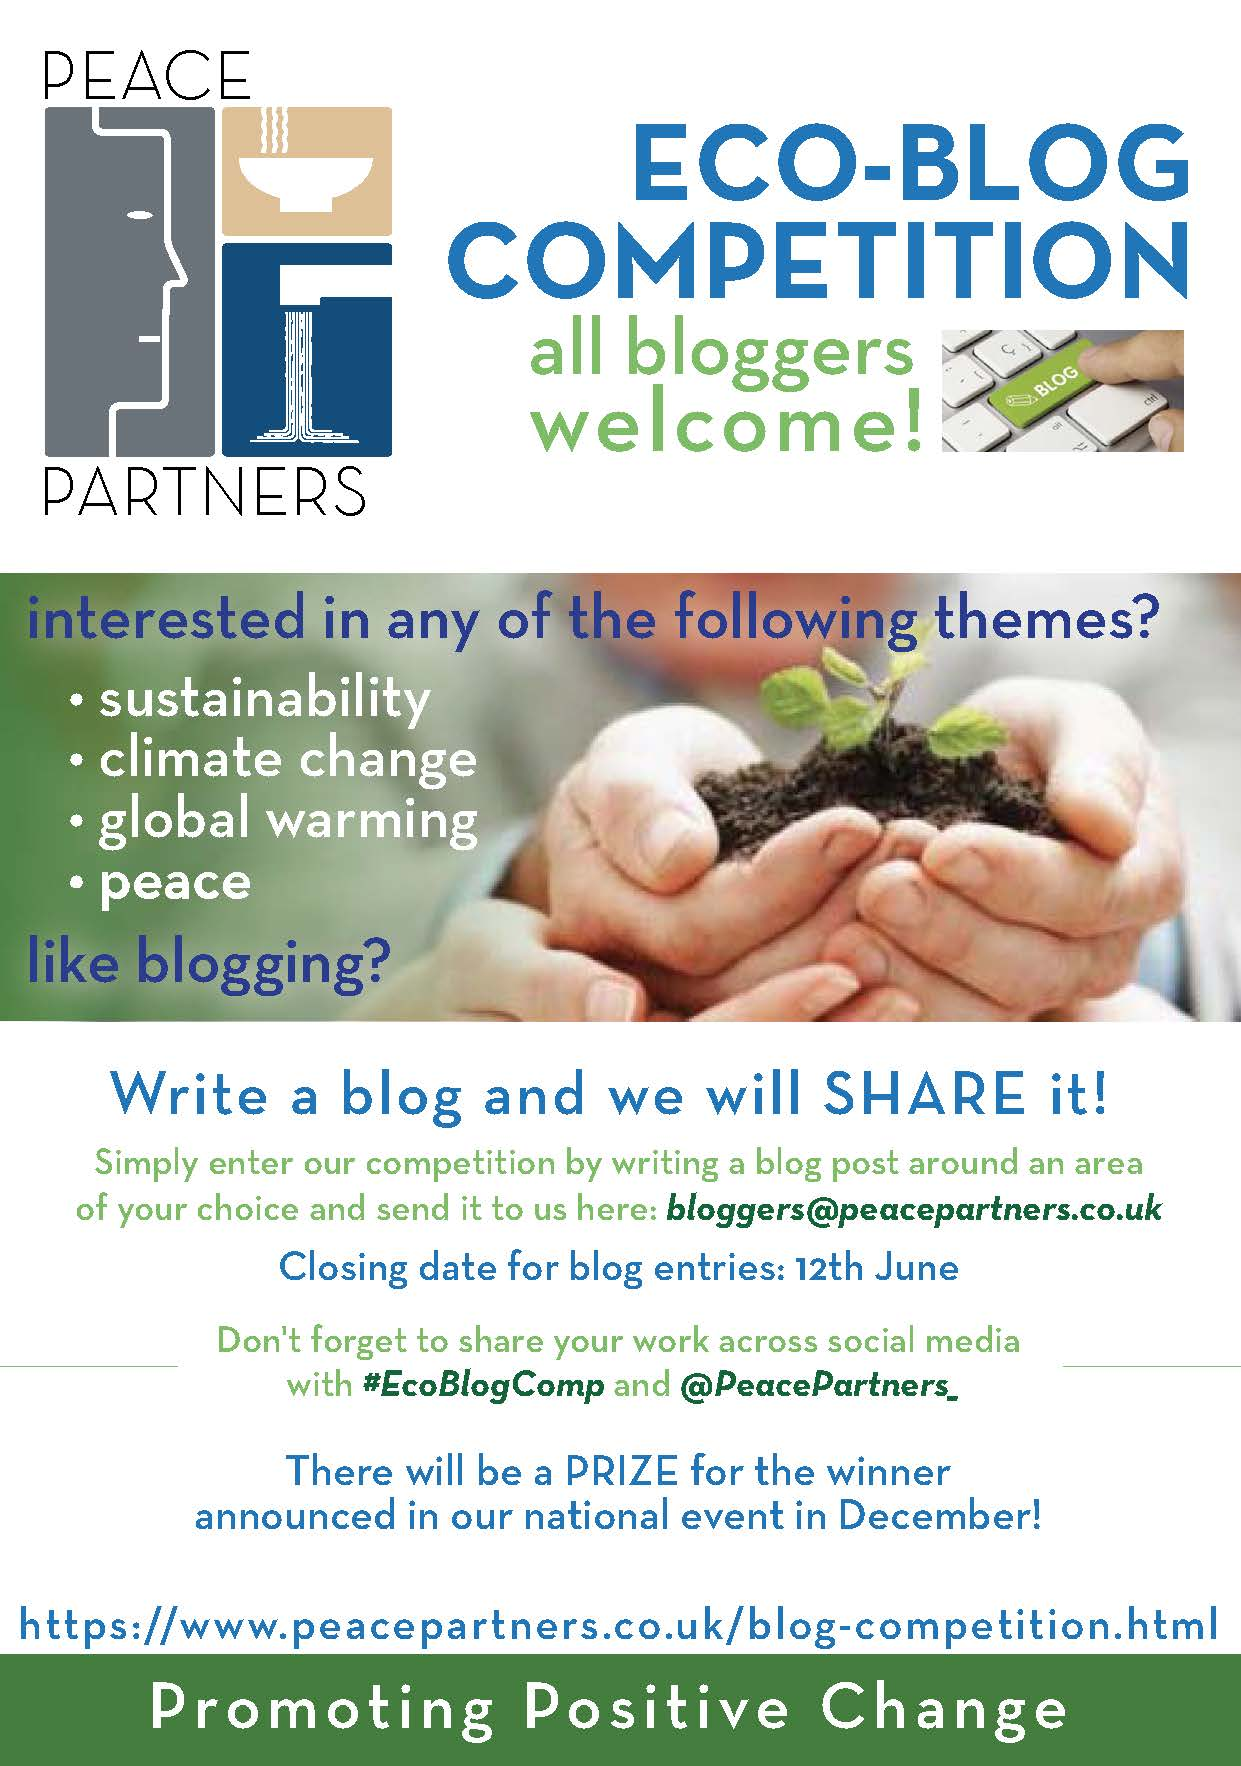 Eco-blog competition_03.jpg